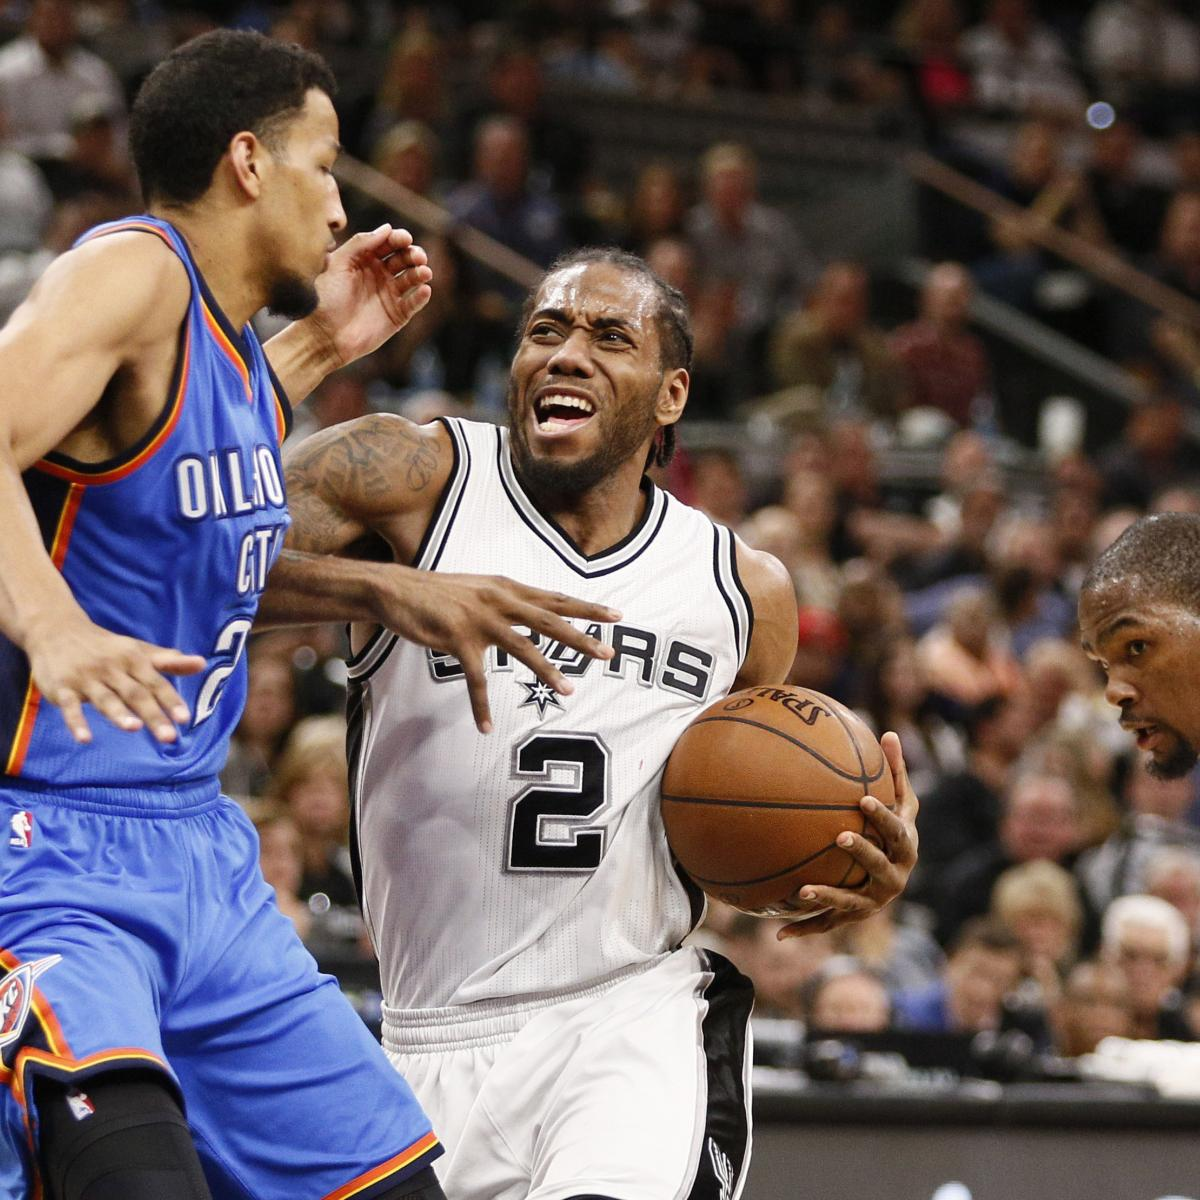 Spurs First Team Players Squad: San Antonio Spurs' 2016-17 NBA Training Camp Roster